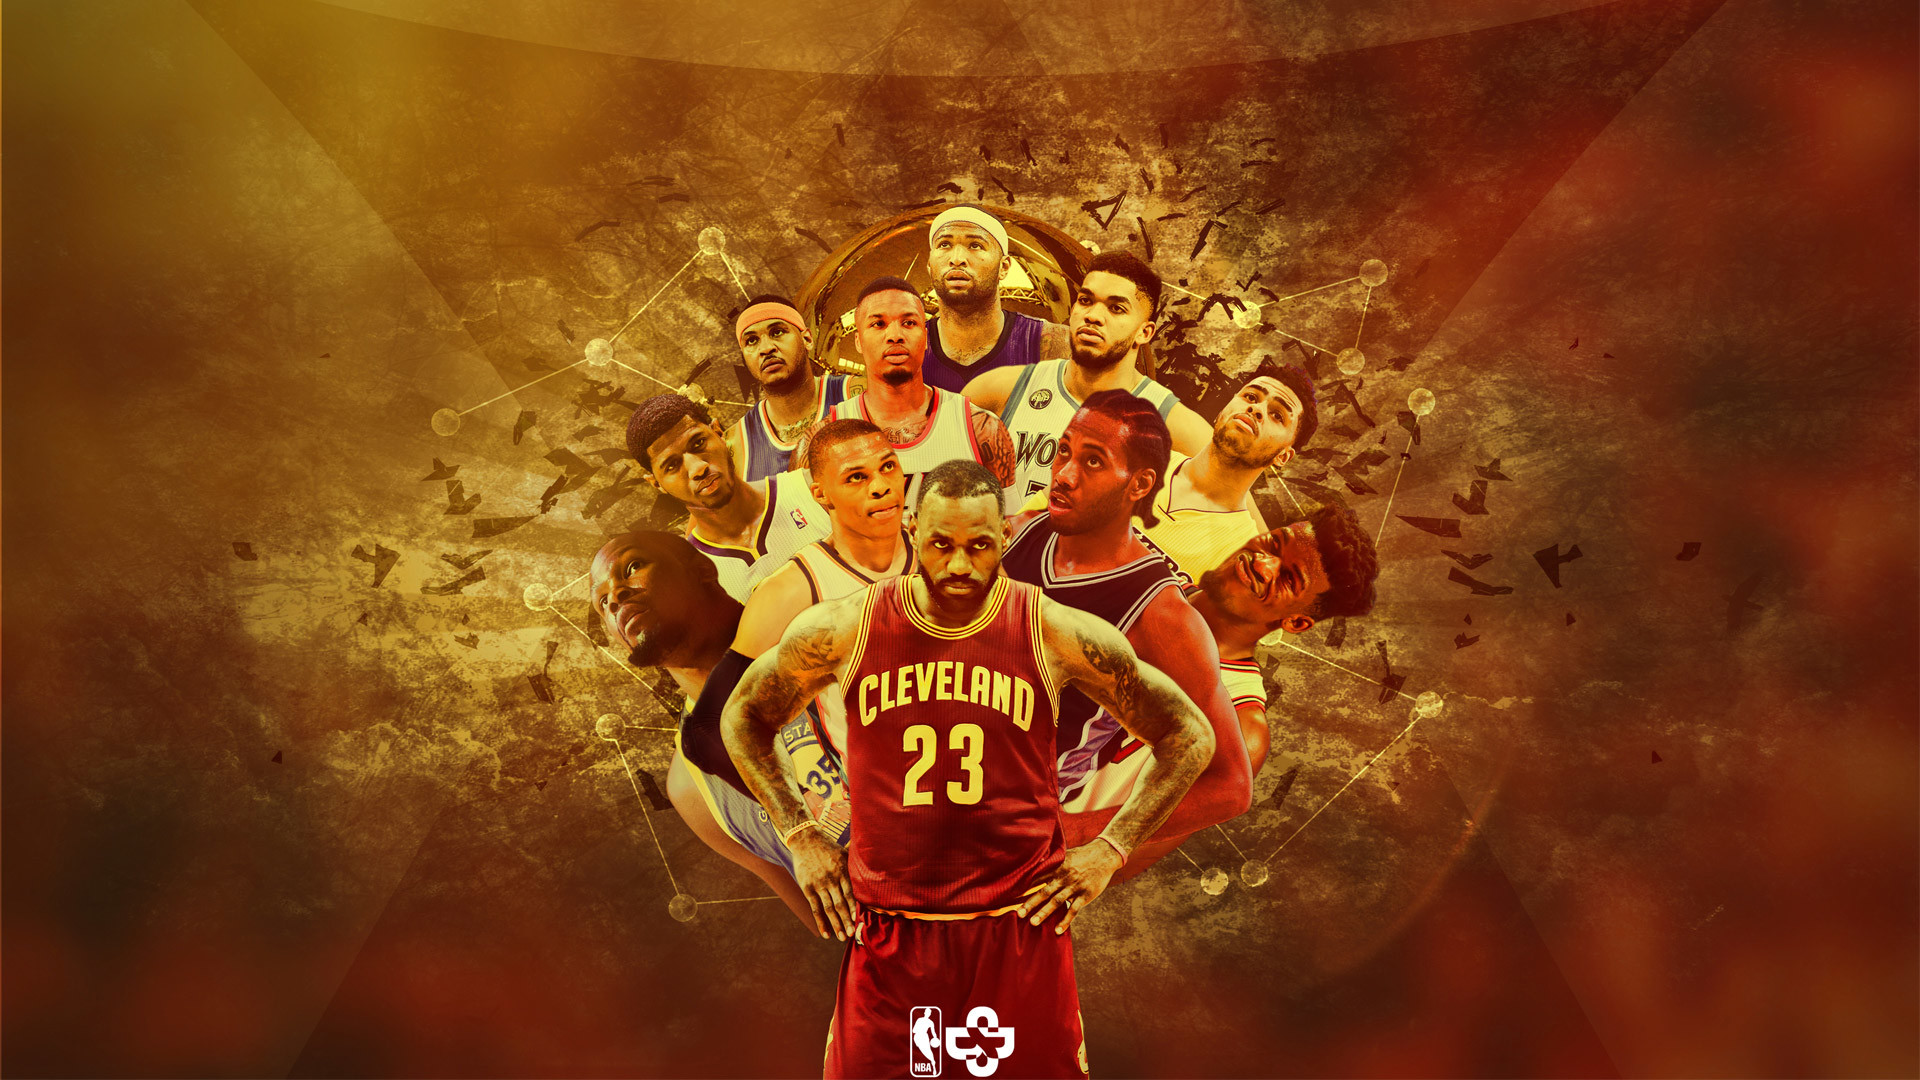 Lebron James Wallpaper Hd Cleveland Cavaliers Basketball Wallpapers 75 Images